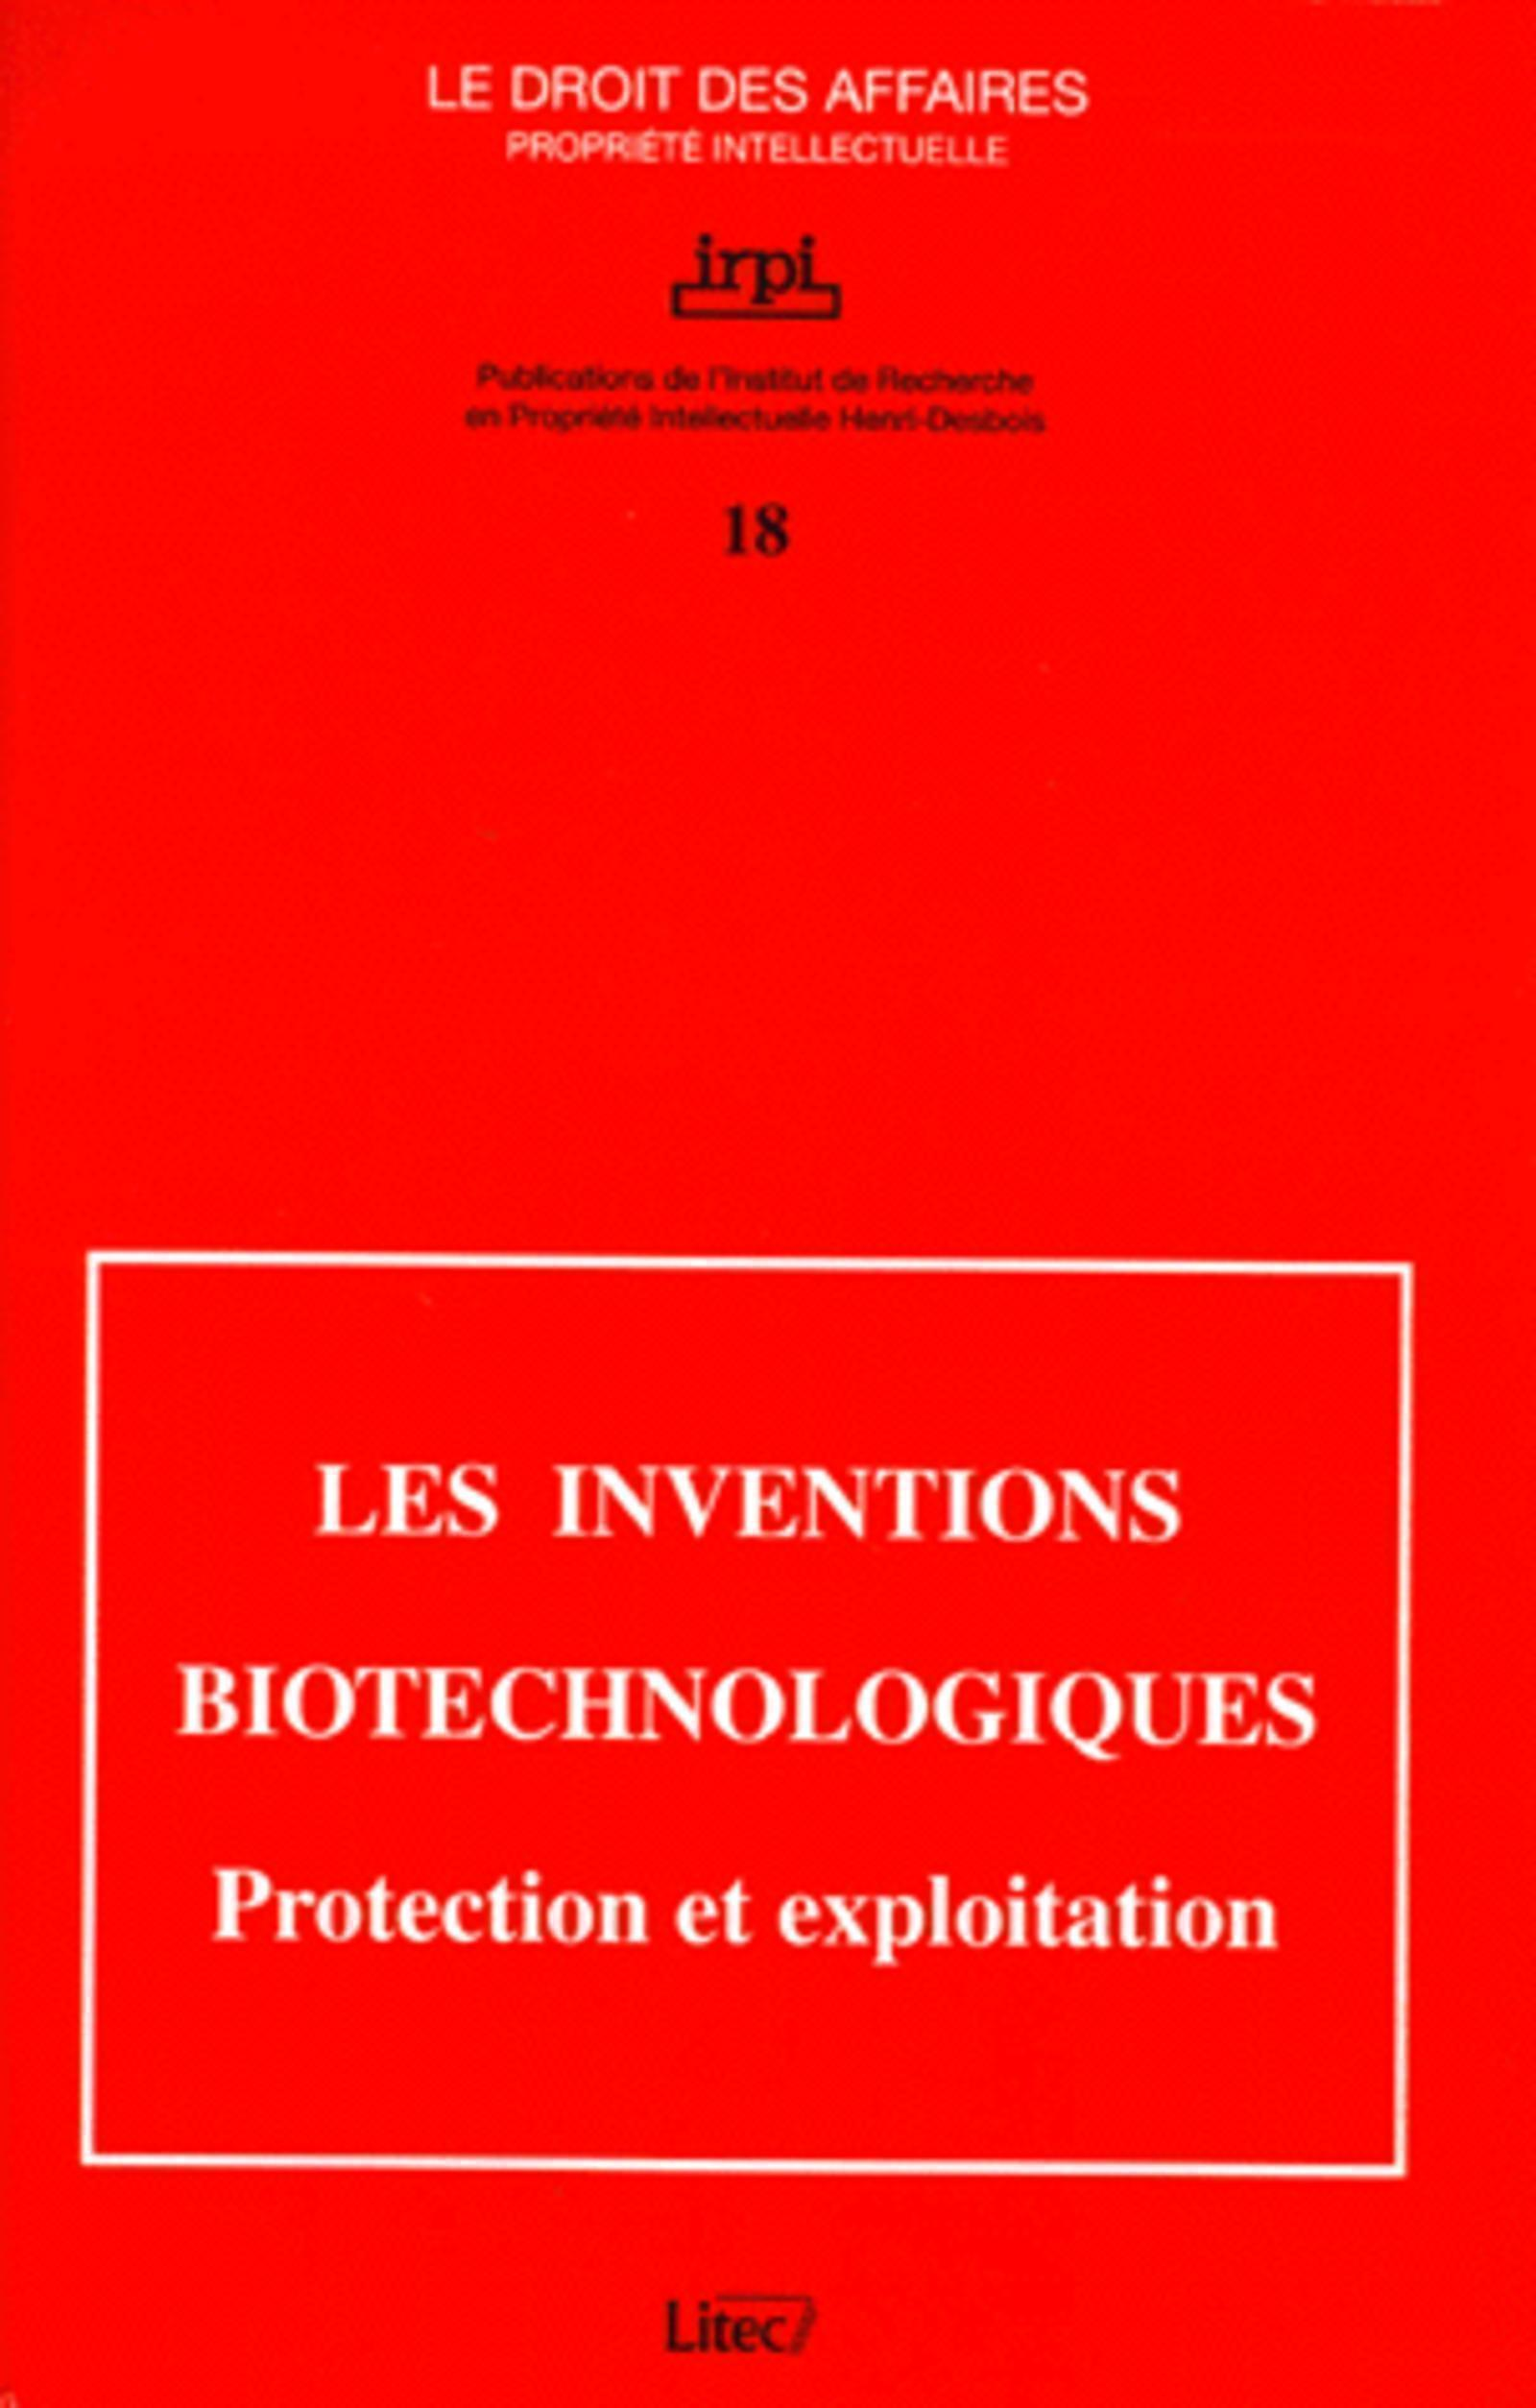 INVENTIONS BIOTECHNOLOGIQUES PROTECTION ET EXPLOITATION